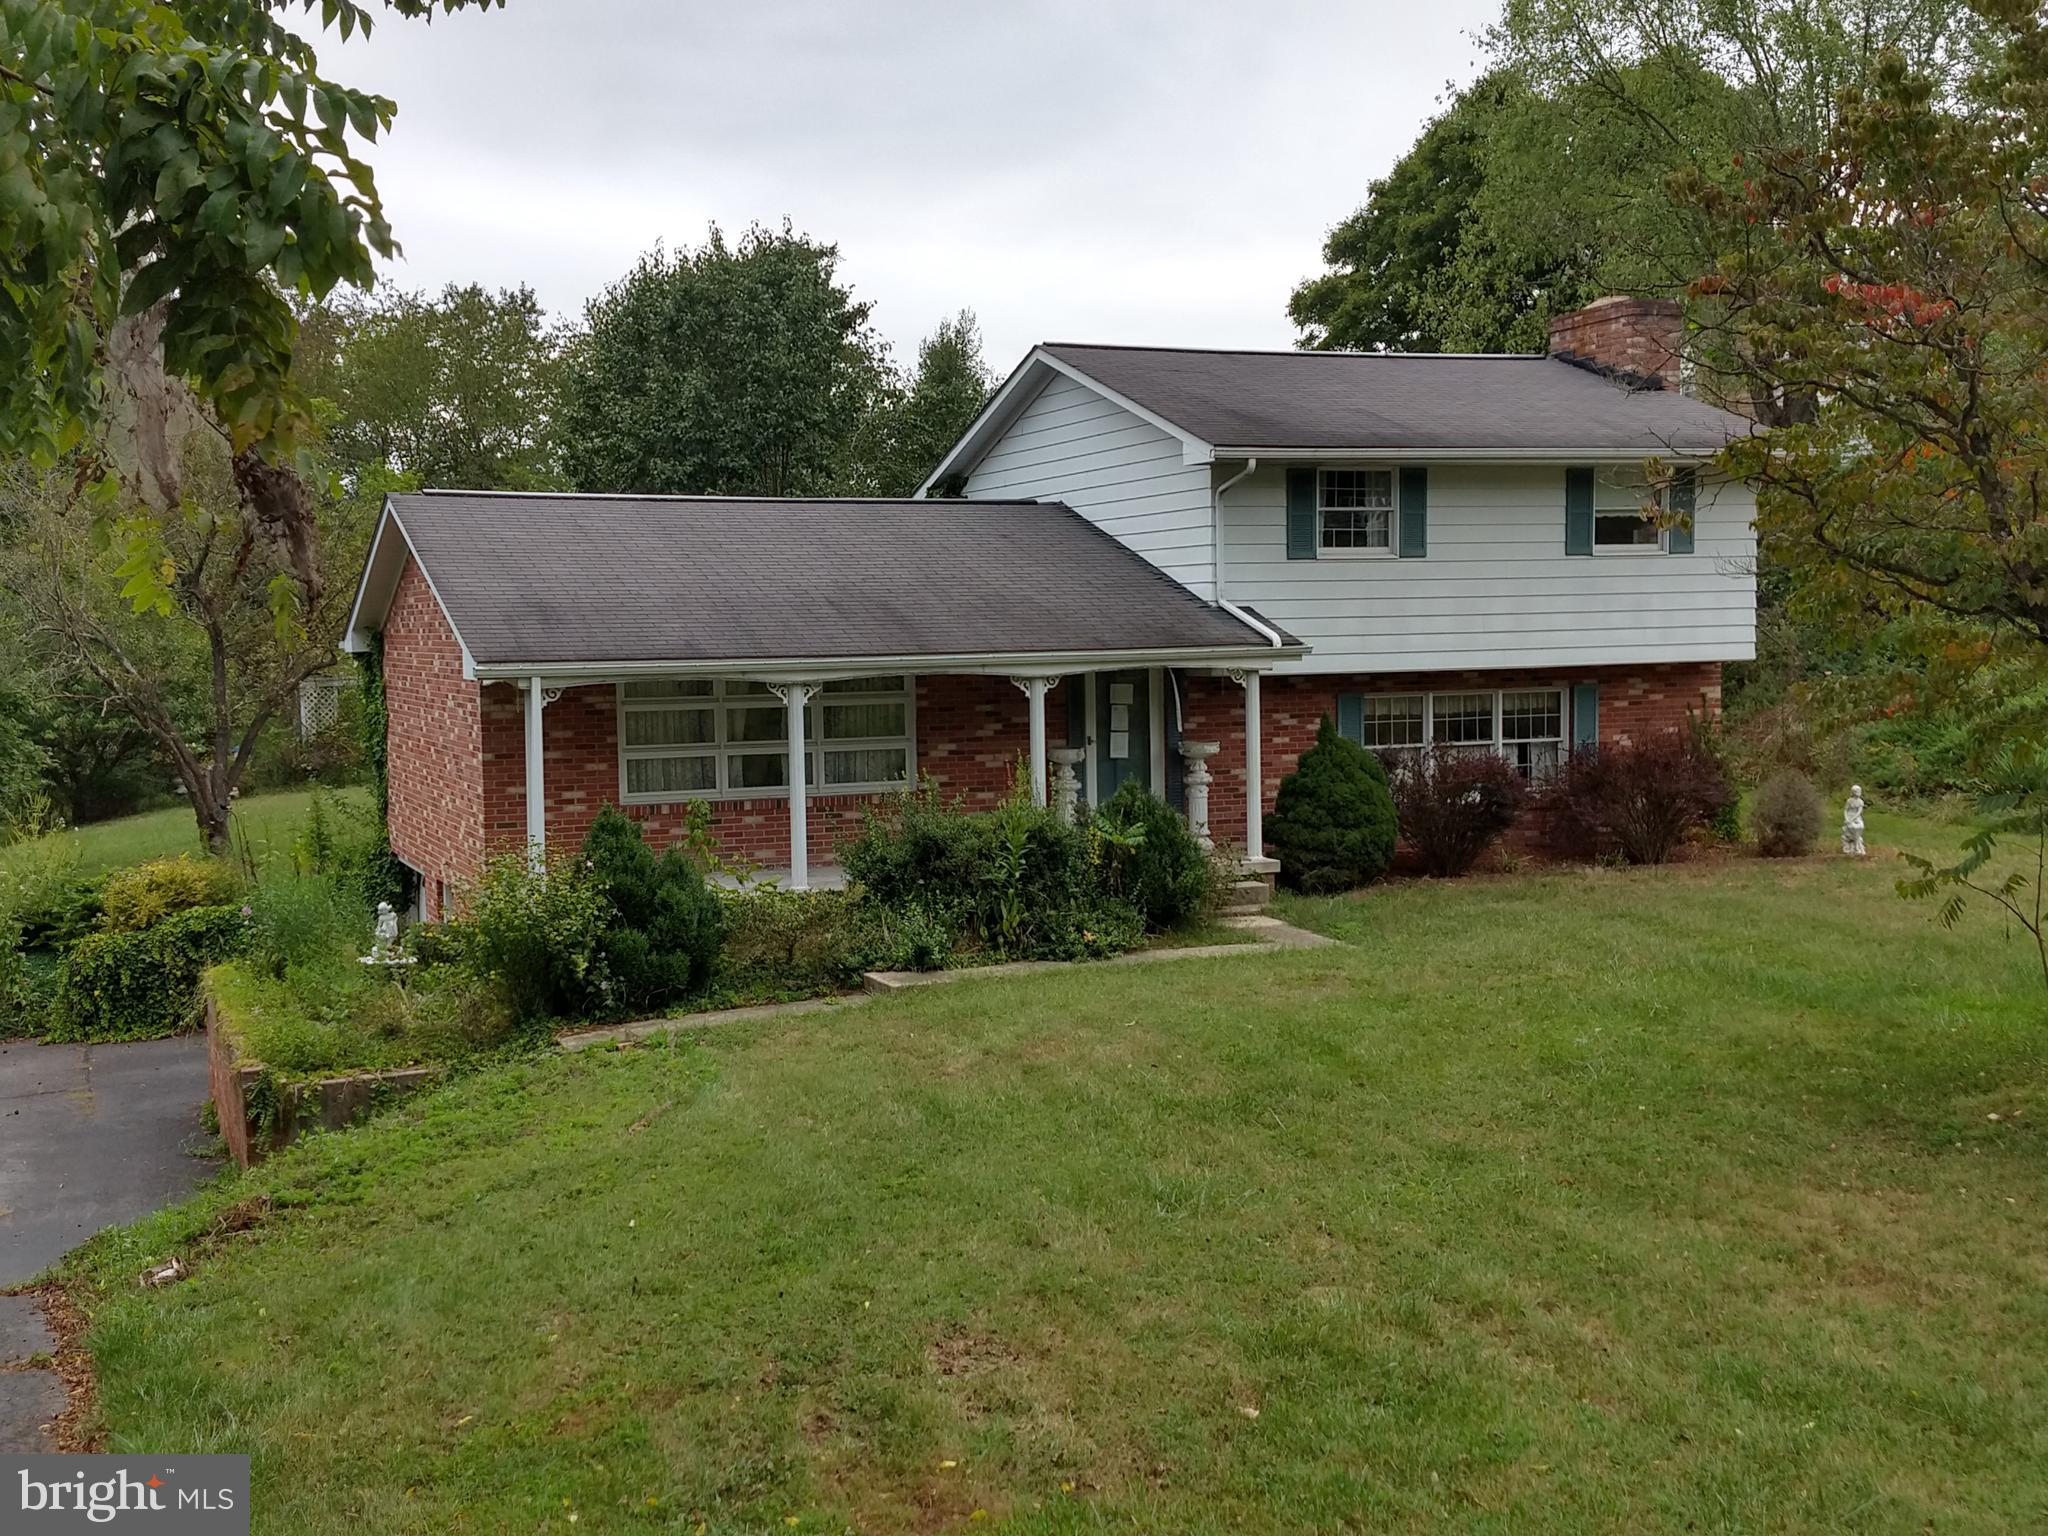 209 PINE CONE, FORT ASHBY, WV 26719